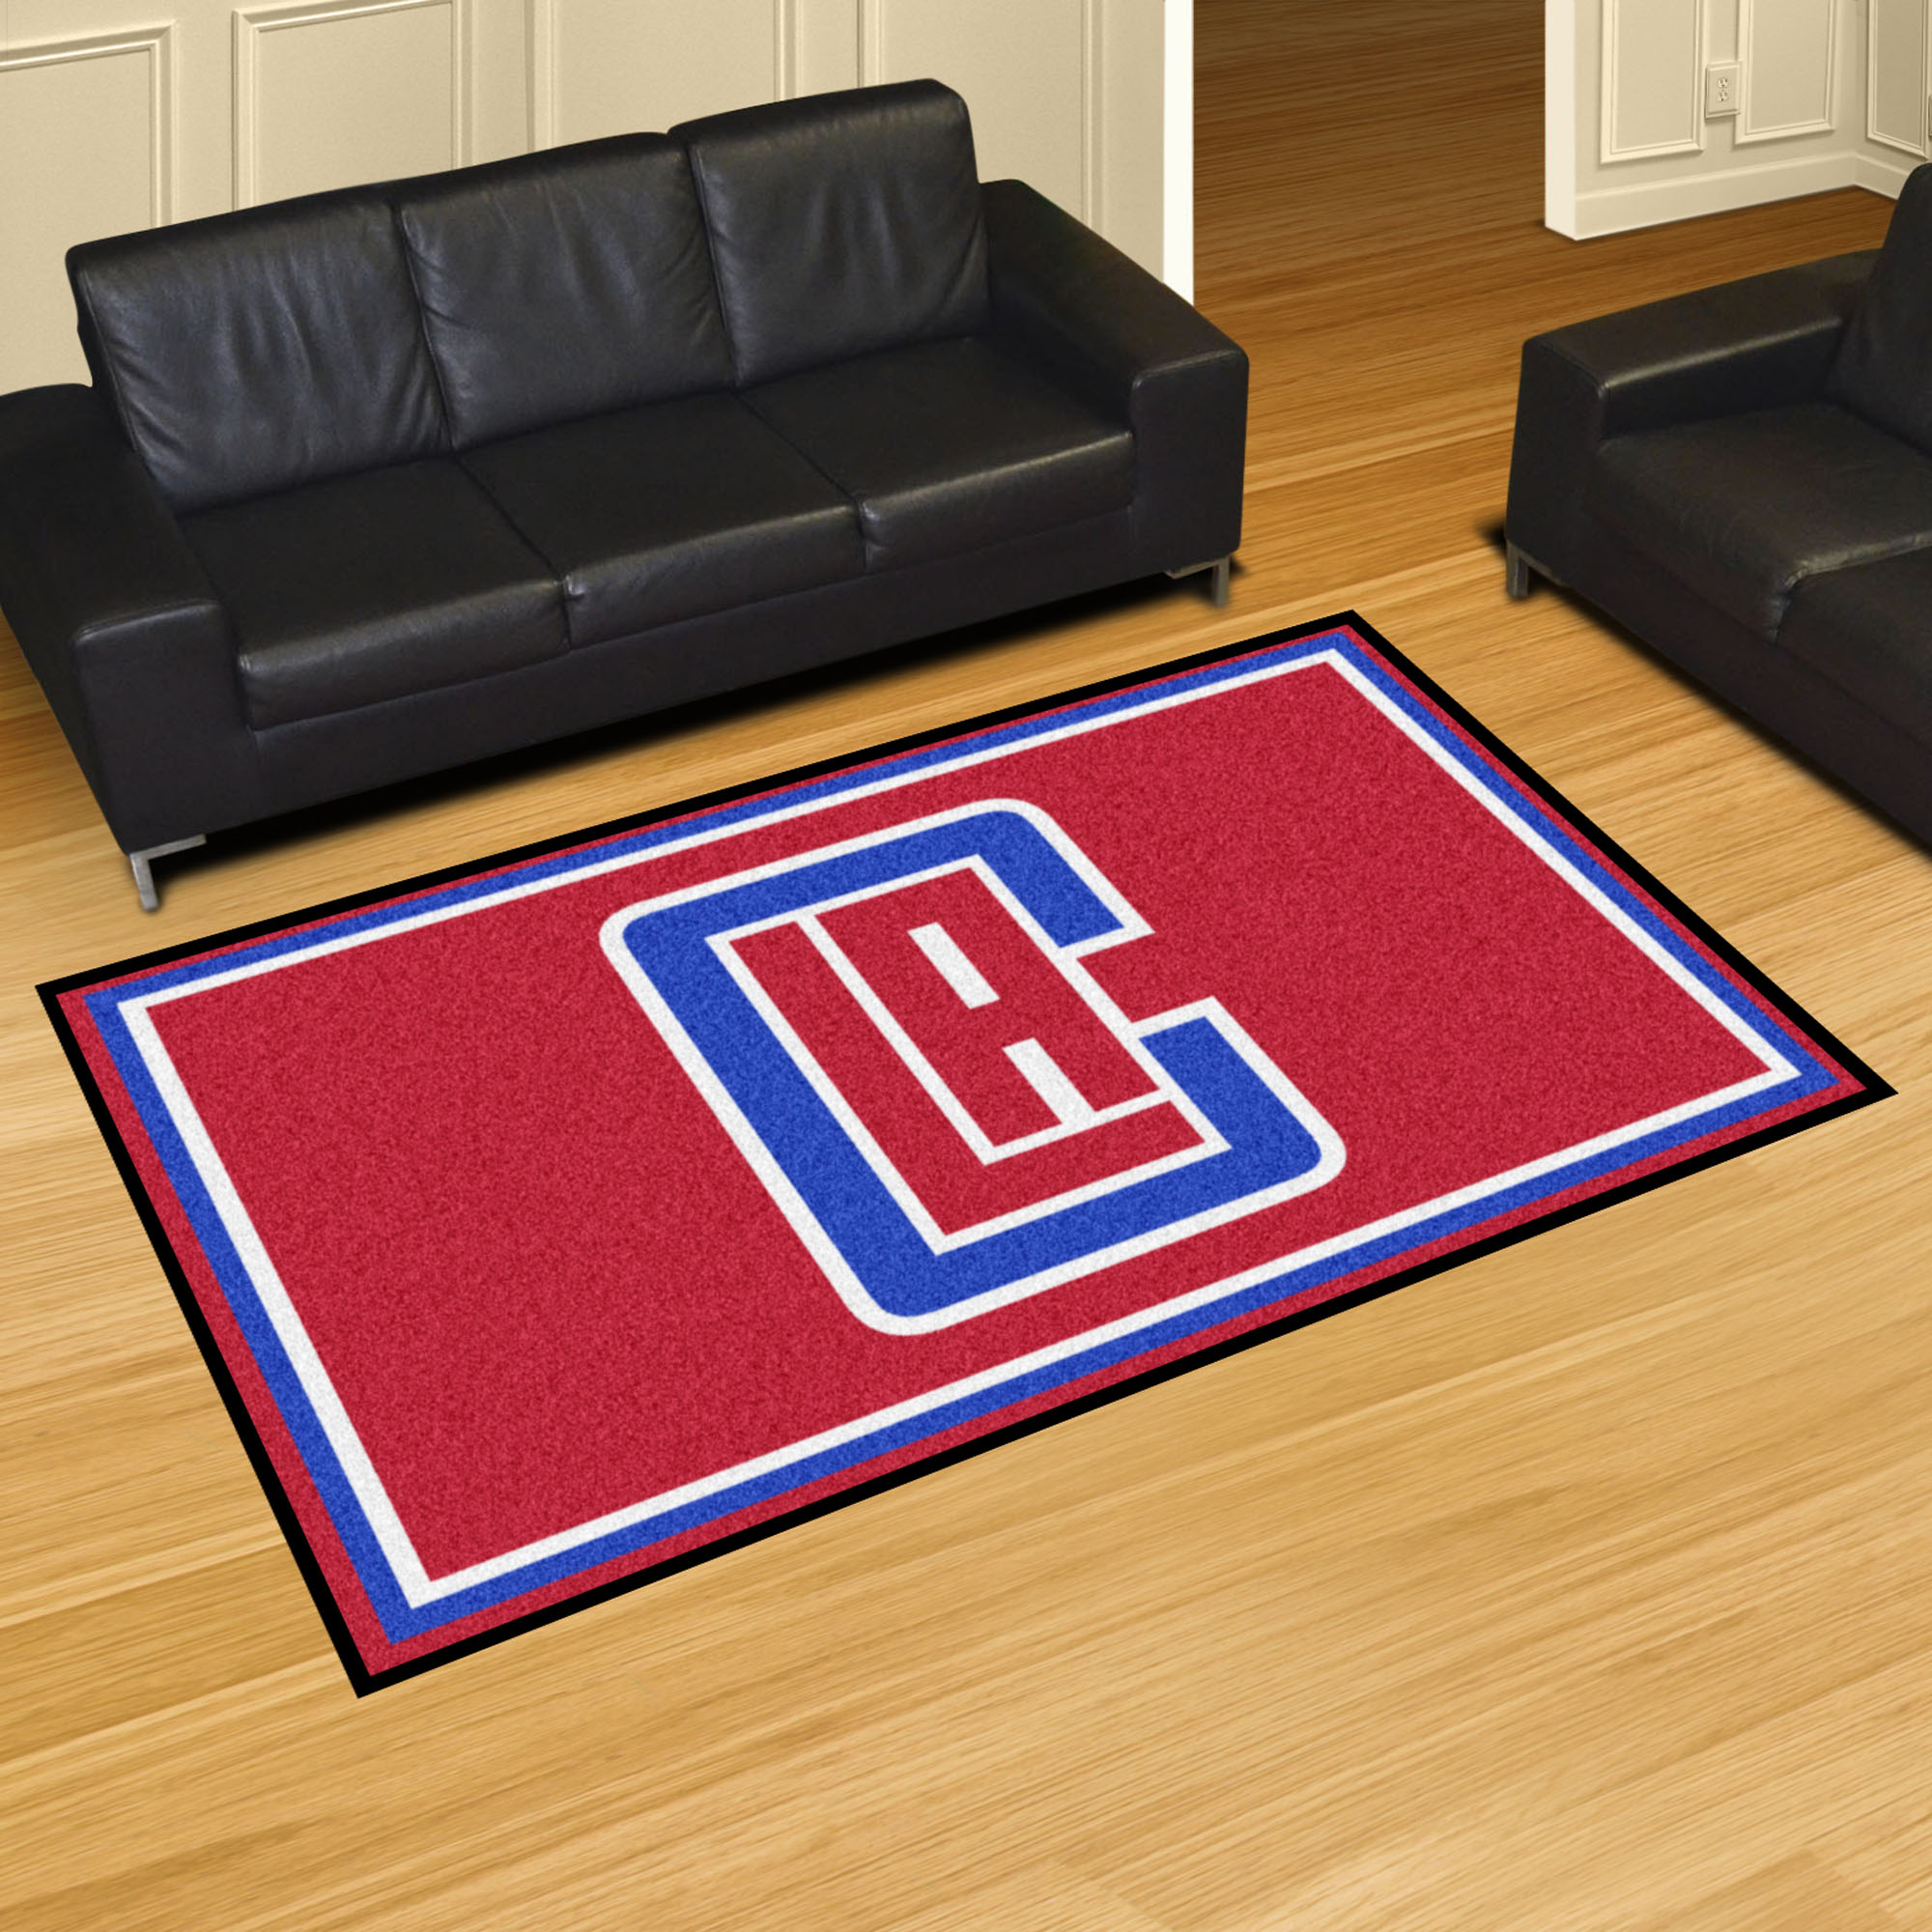 Los Angeles Clippers 5x8 Area Rug